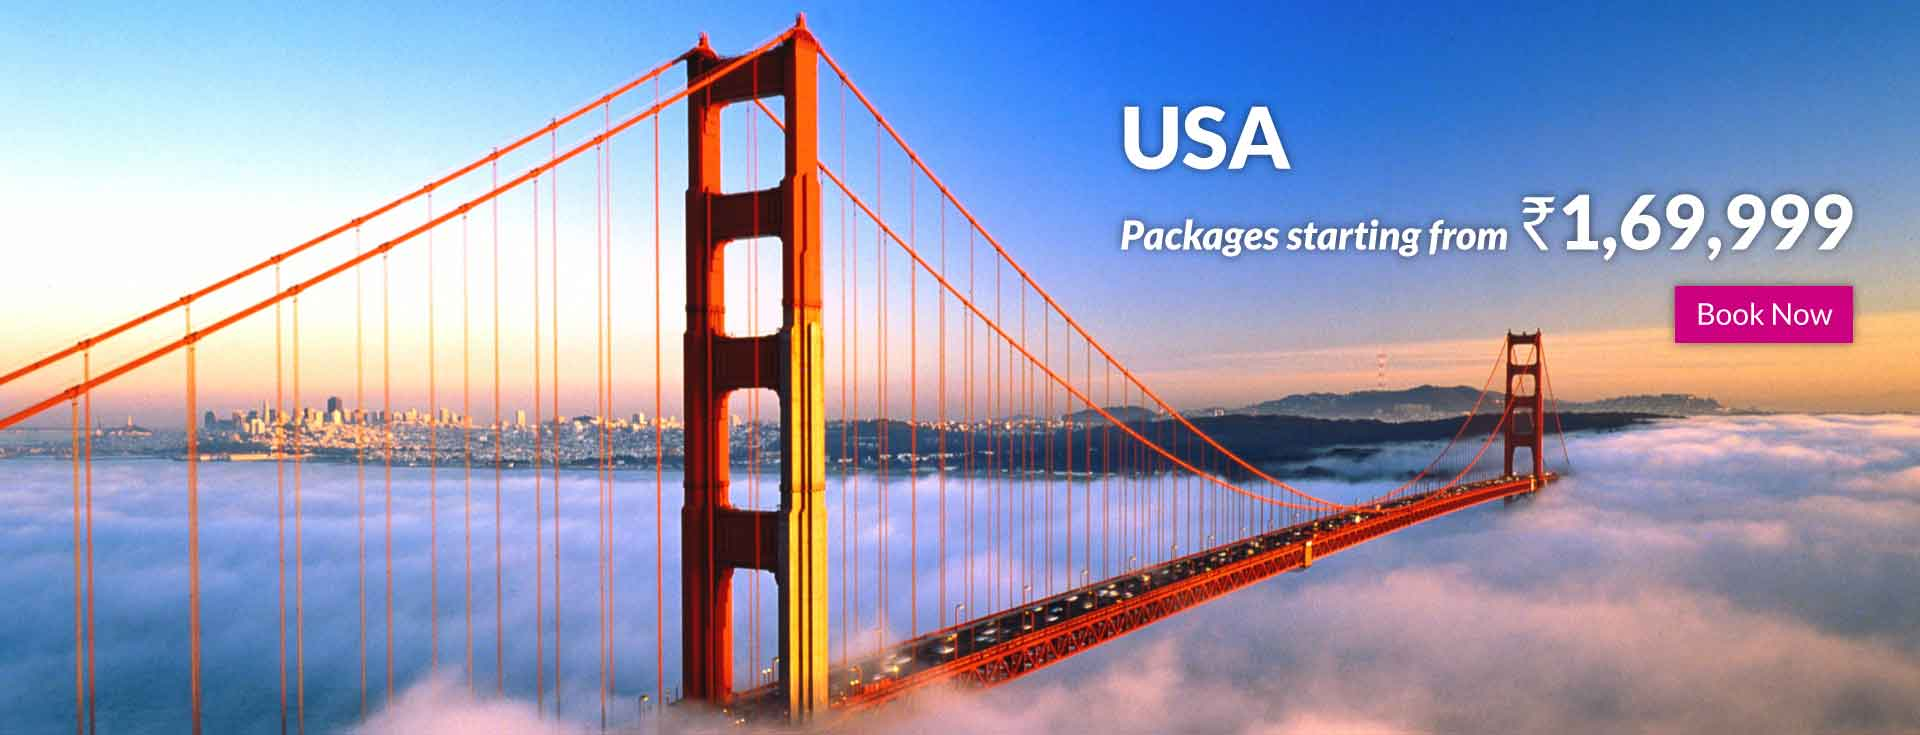 USA Packages